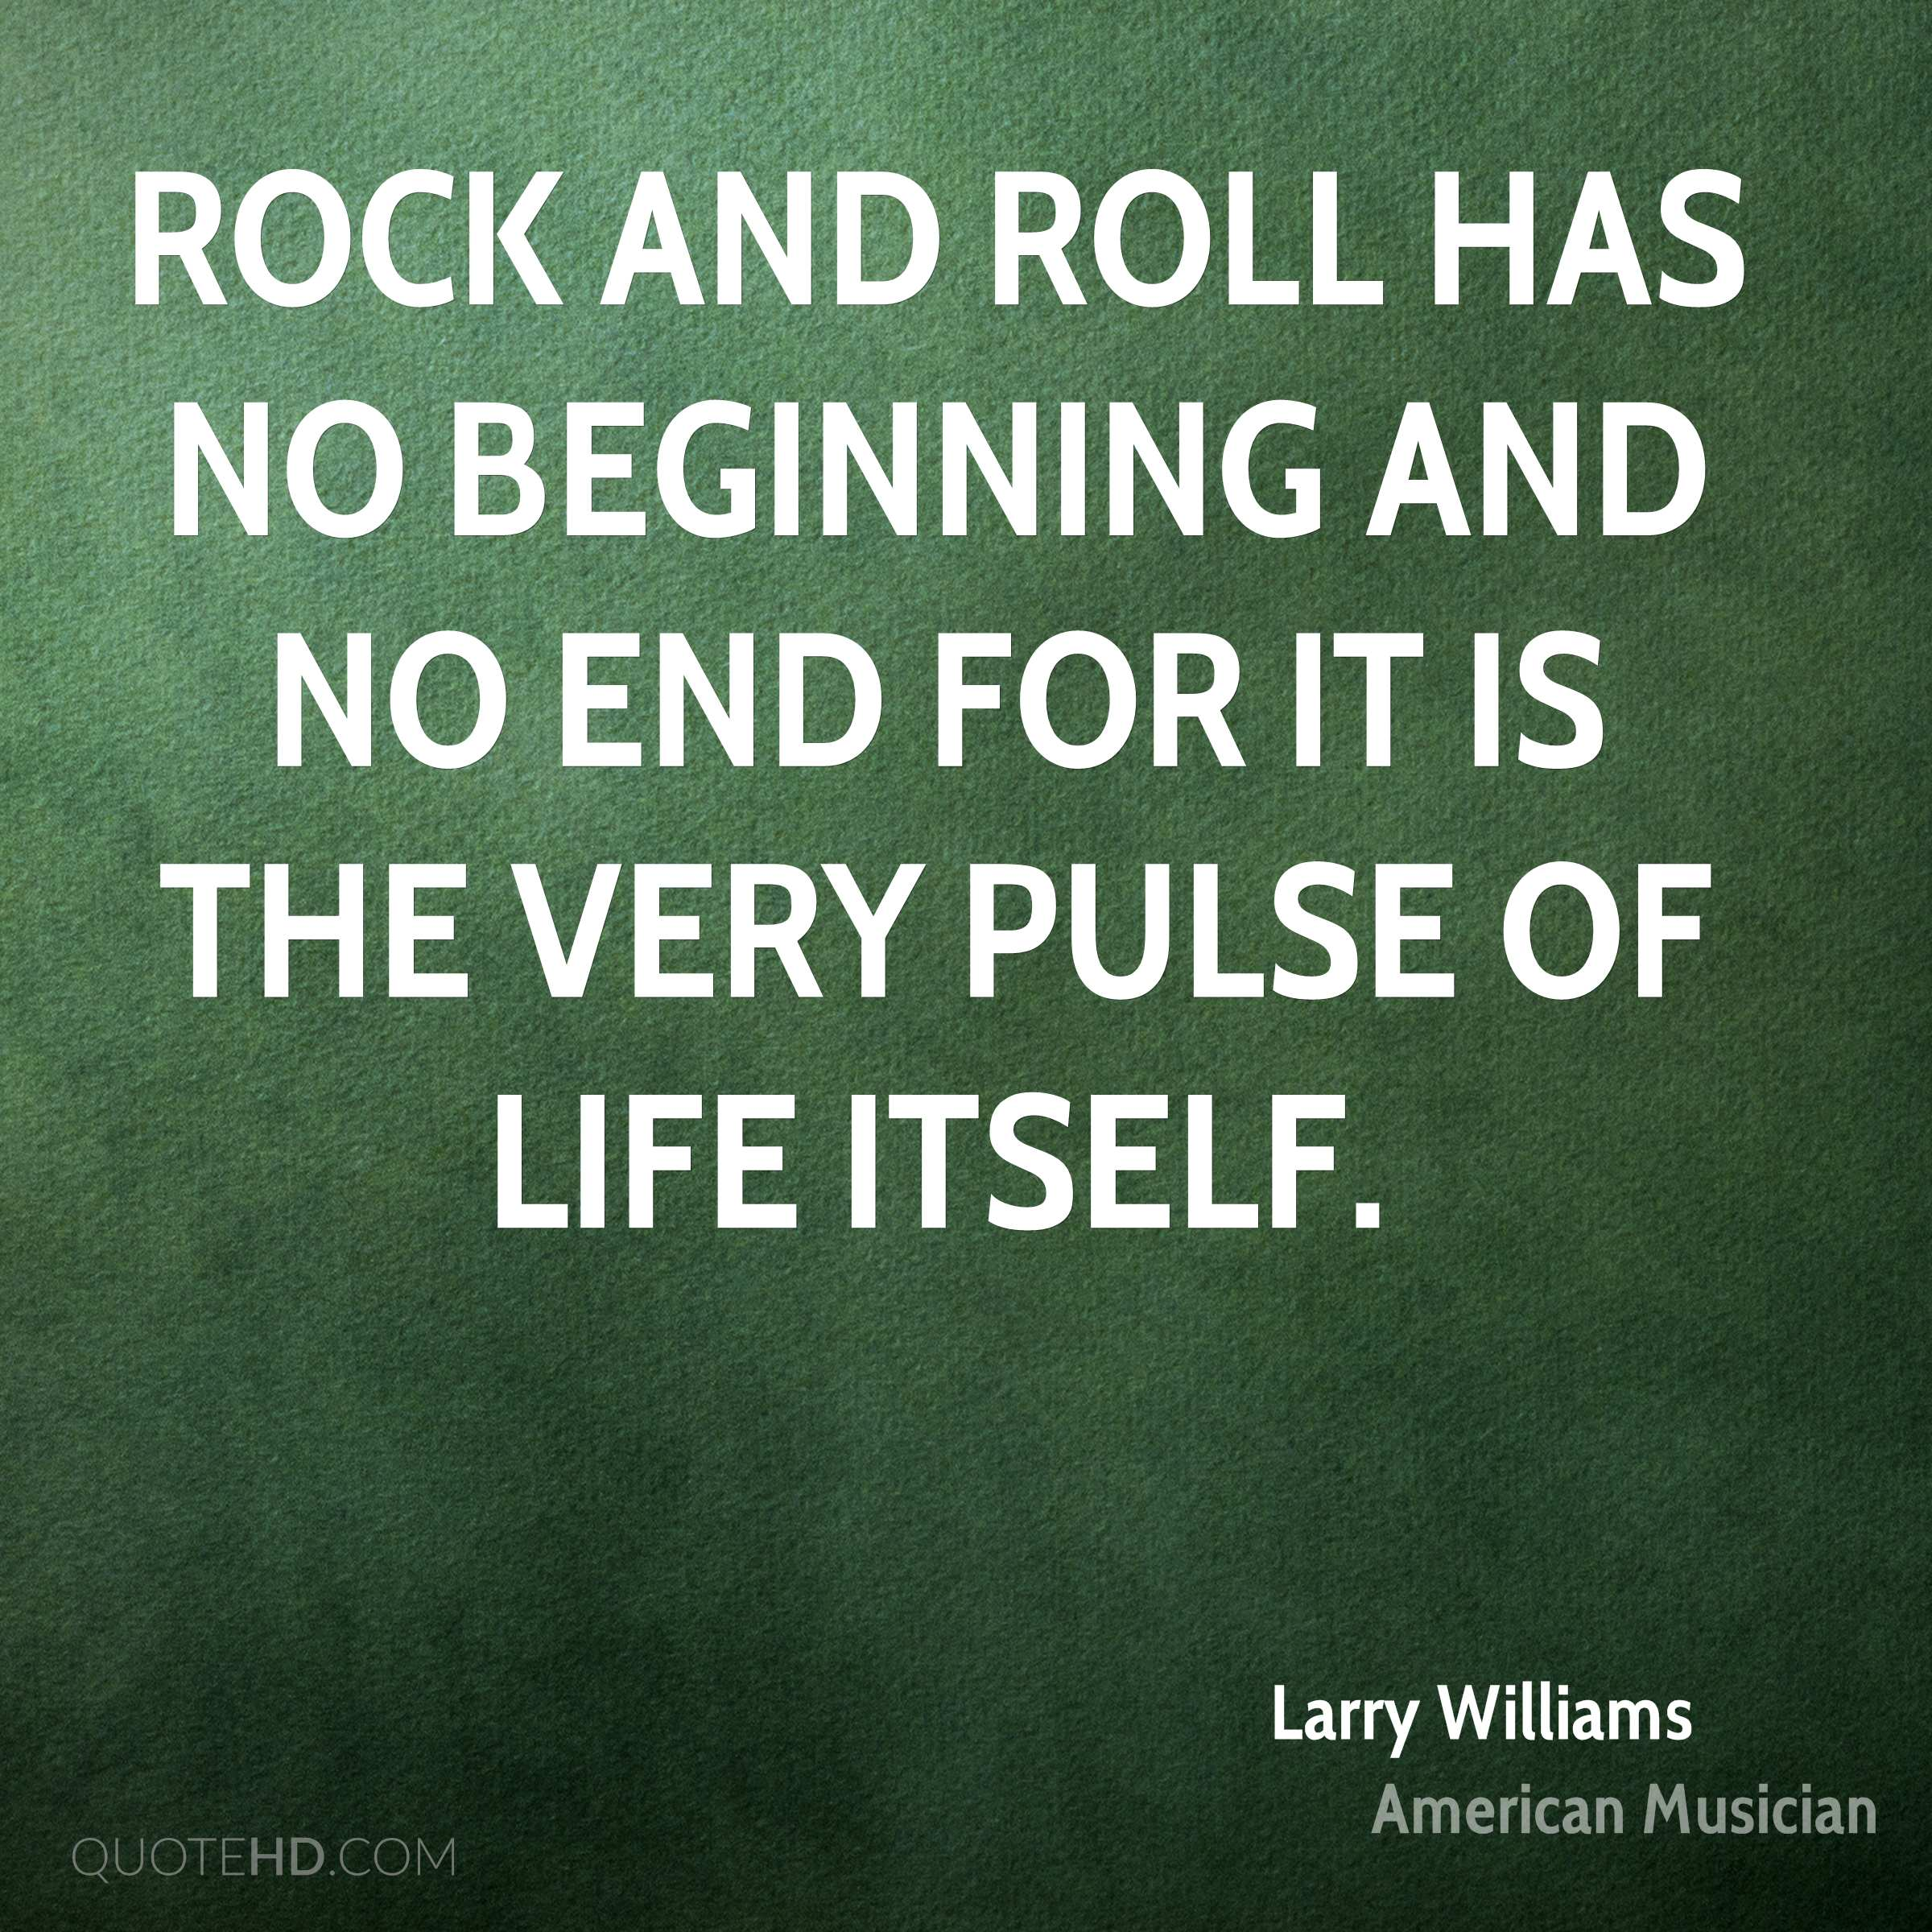 Rock and Roll has no beginning and no end for it is the very pulse of life itself.